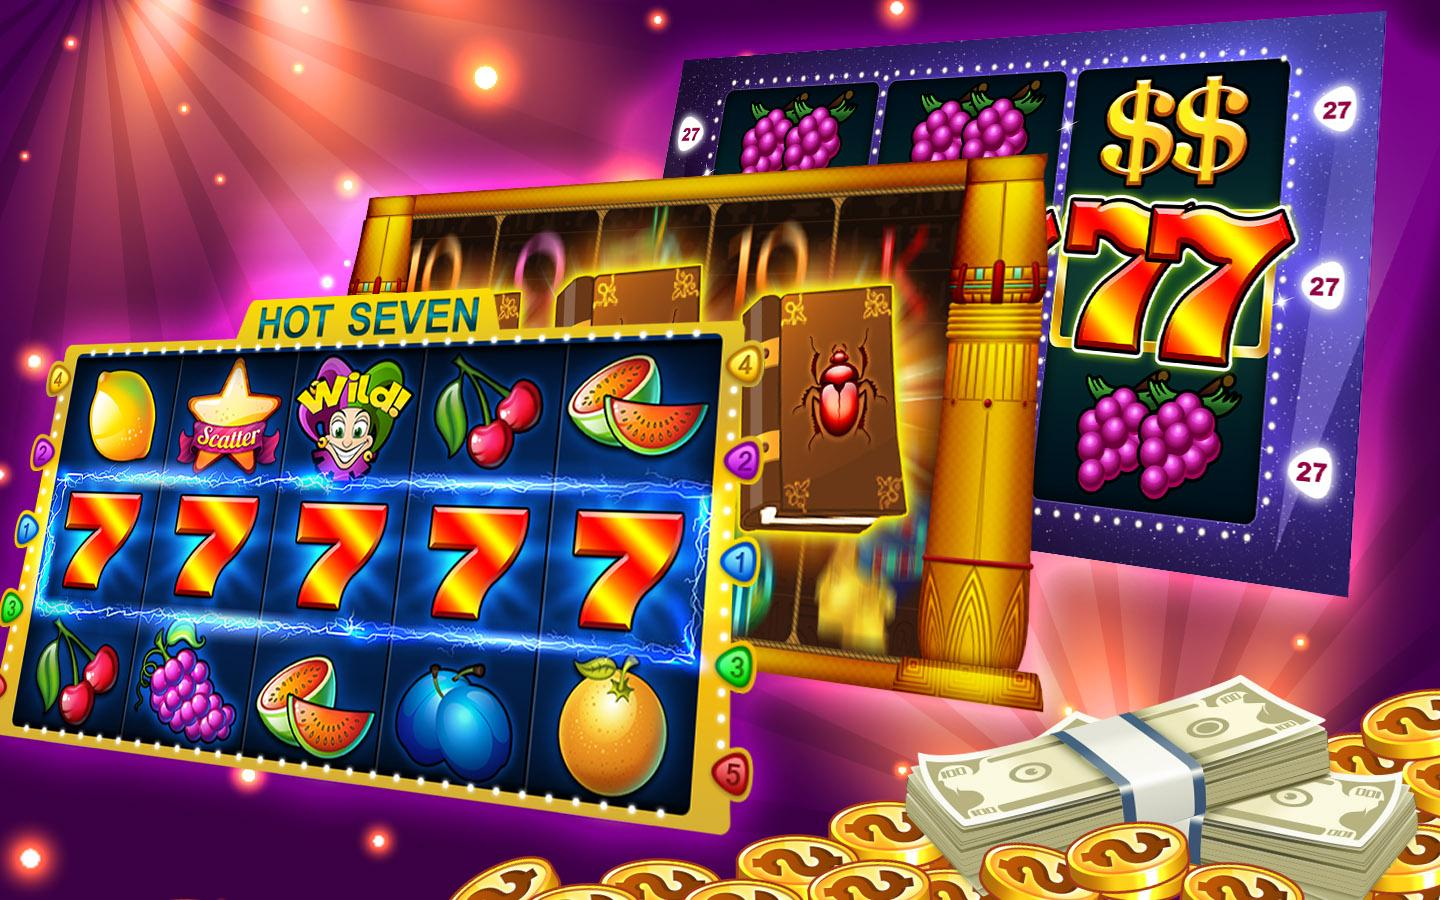 Mega King Slot Machine - Play the Free Casino Game Online